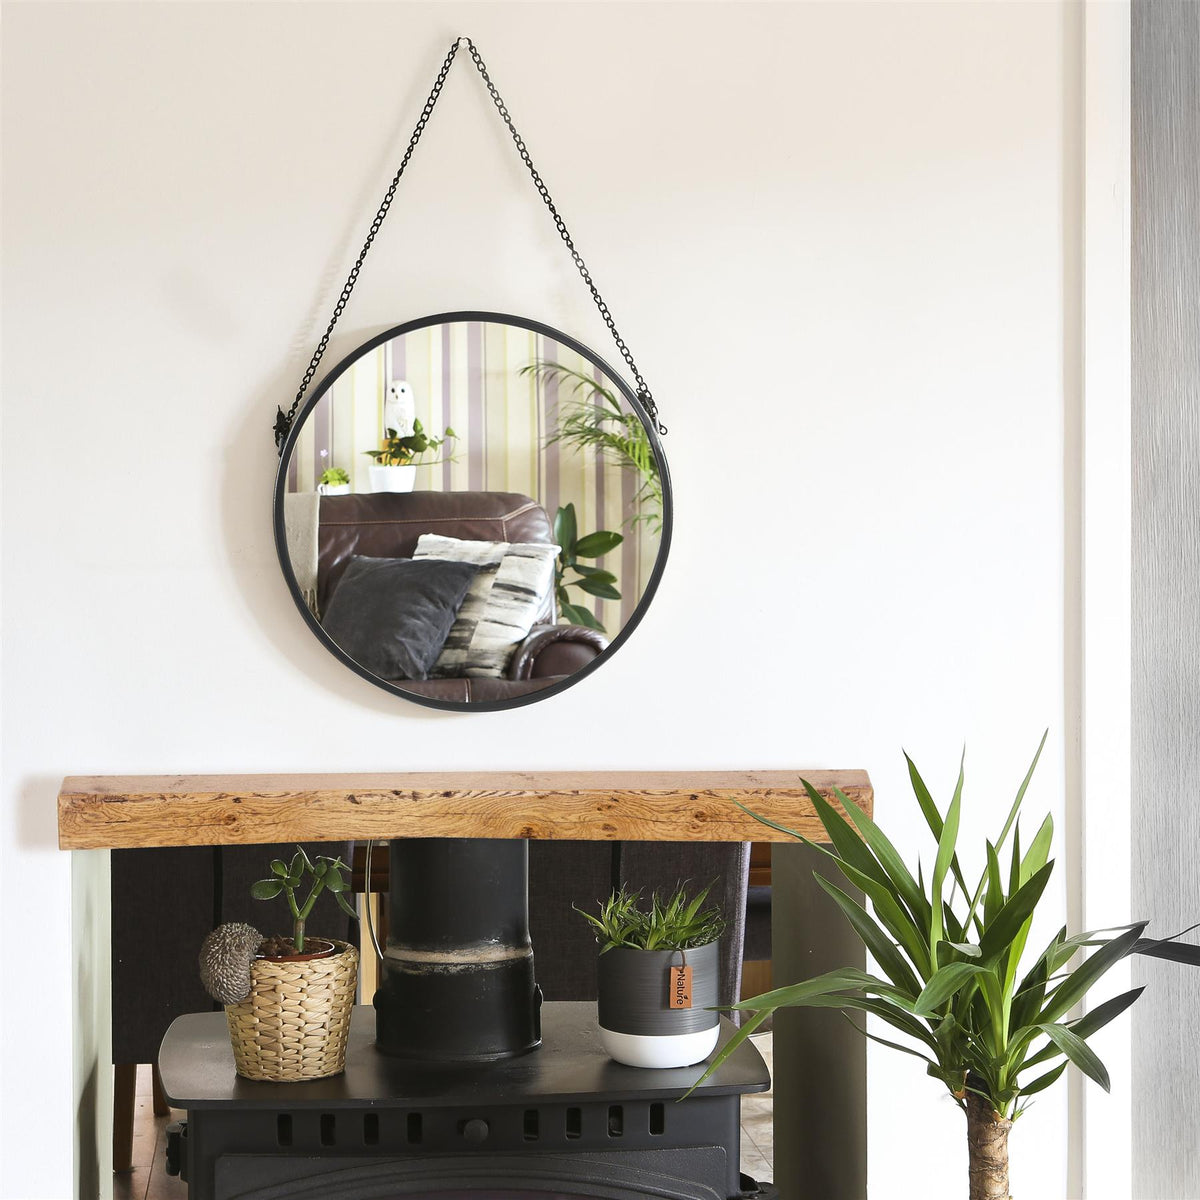 Harbour Housewares Round Framed Wall Mirror - Black Chain - 40cm - Black